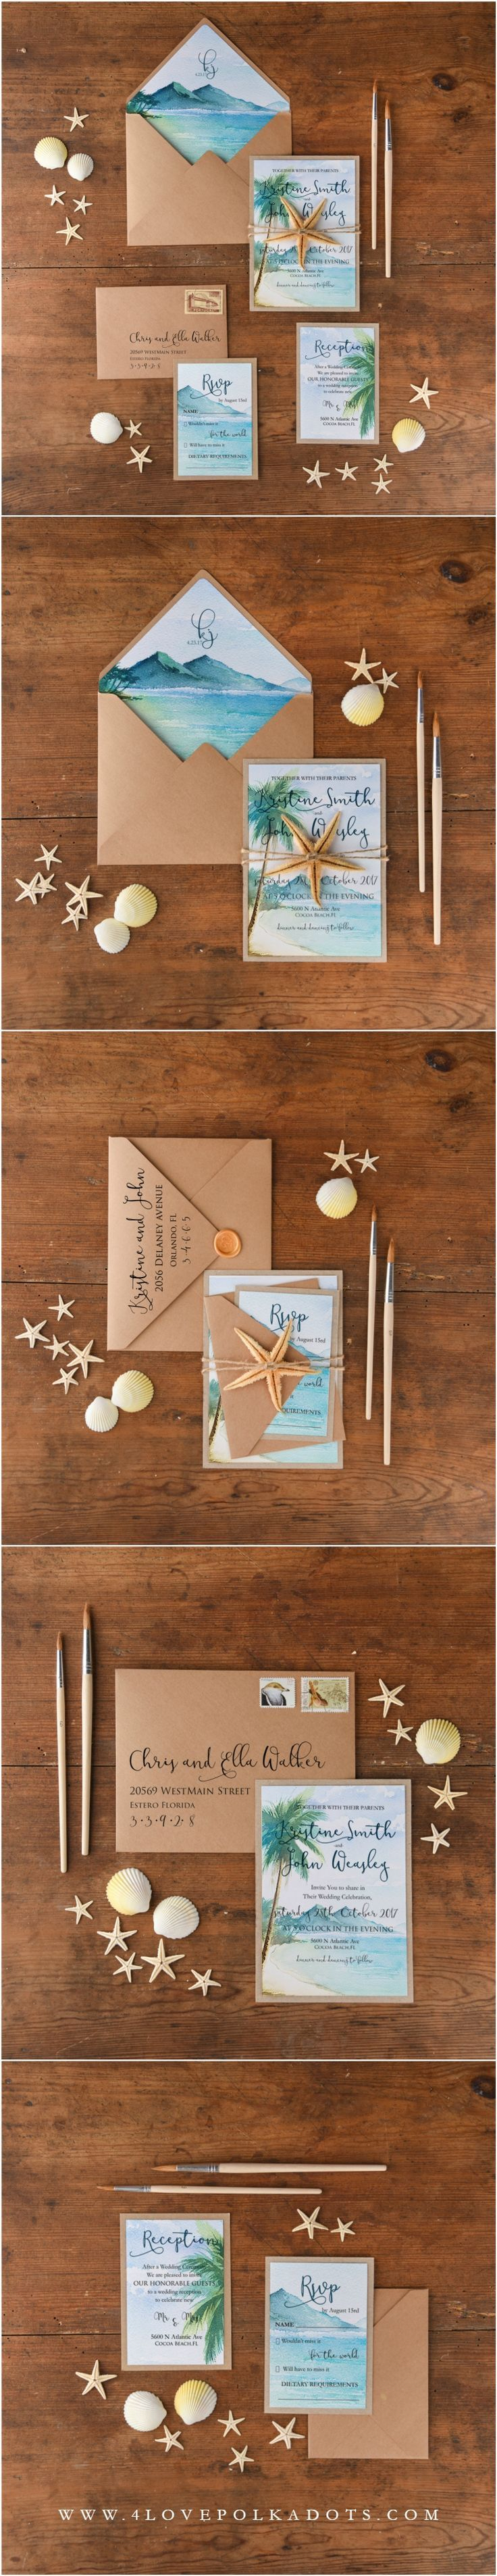 I love it !!! Beach wedding invitation !! just by looking